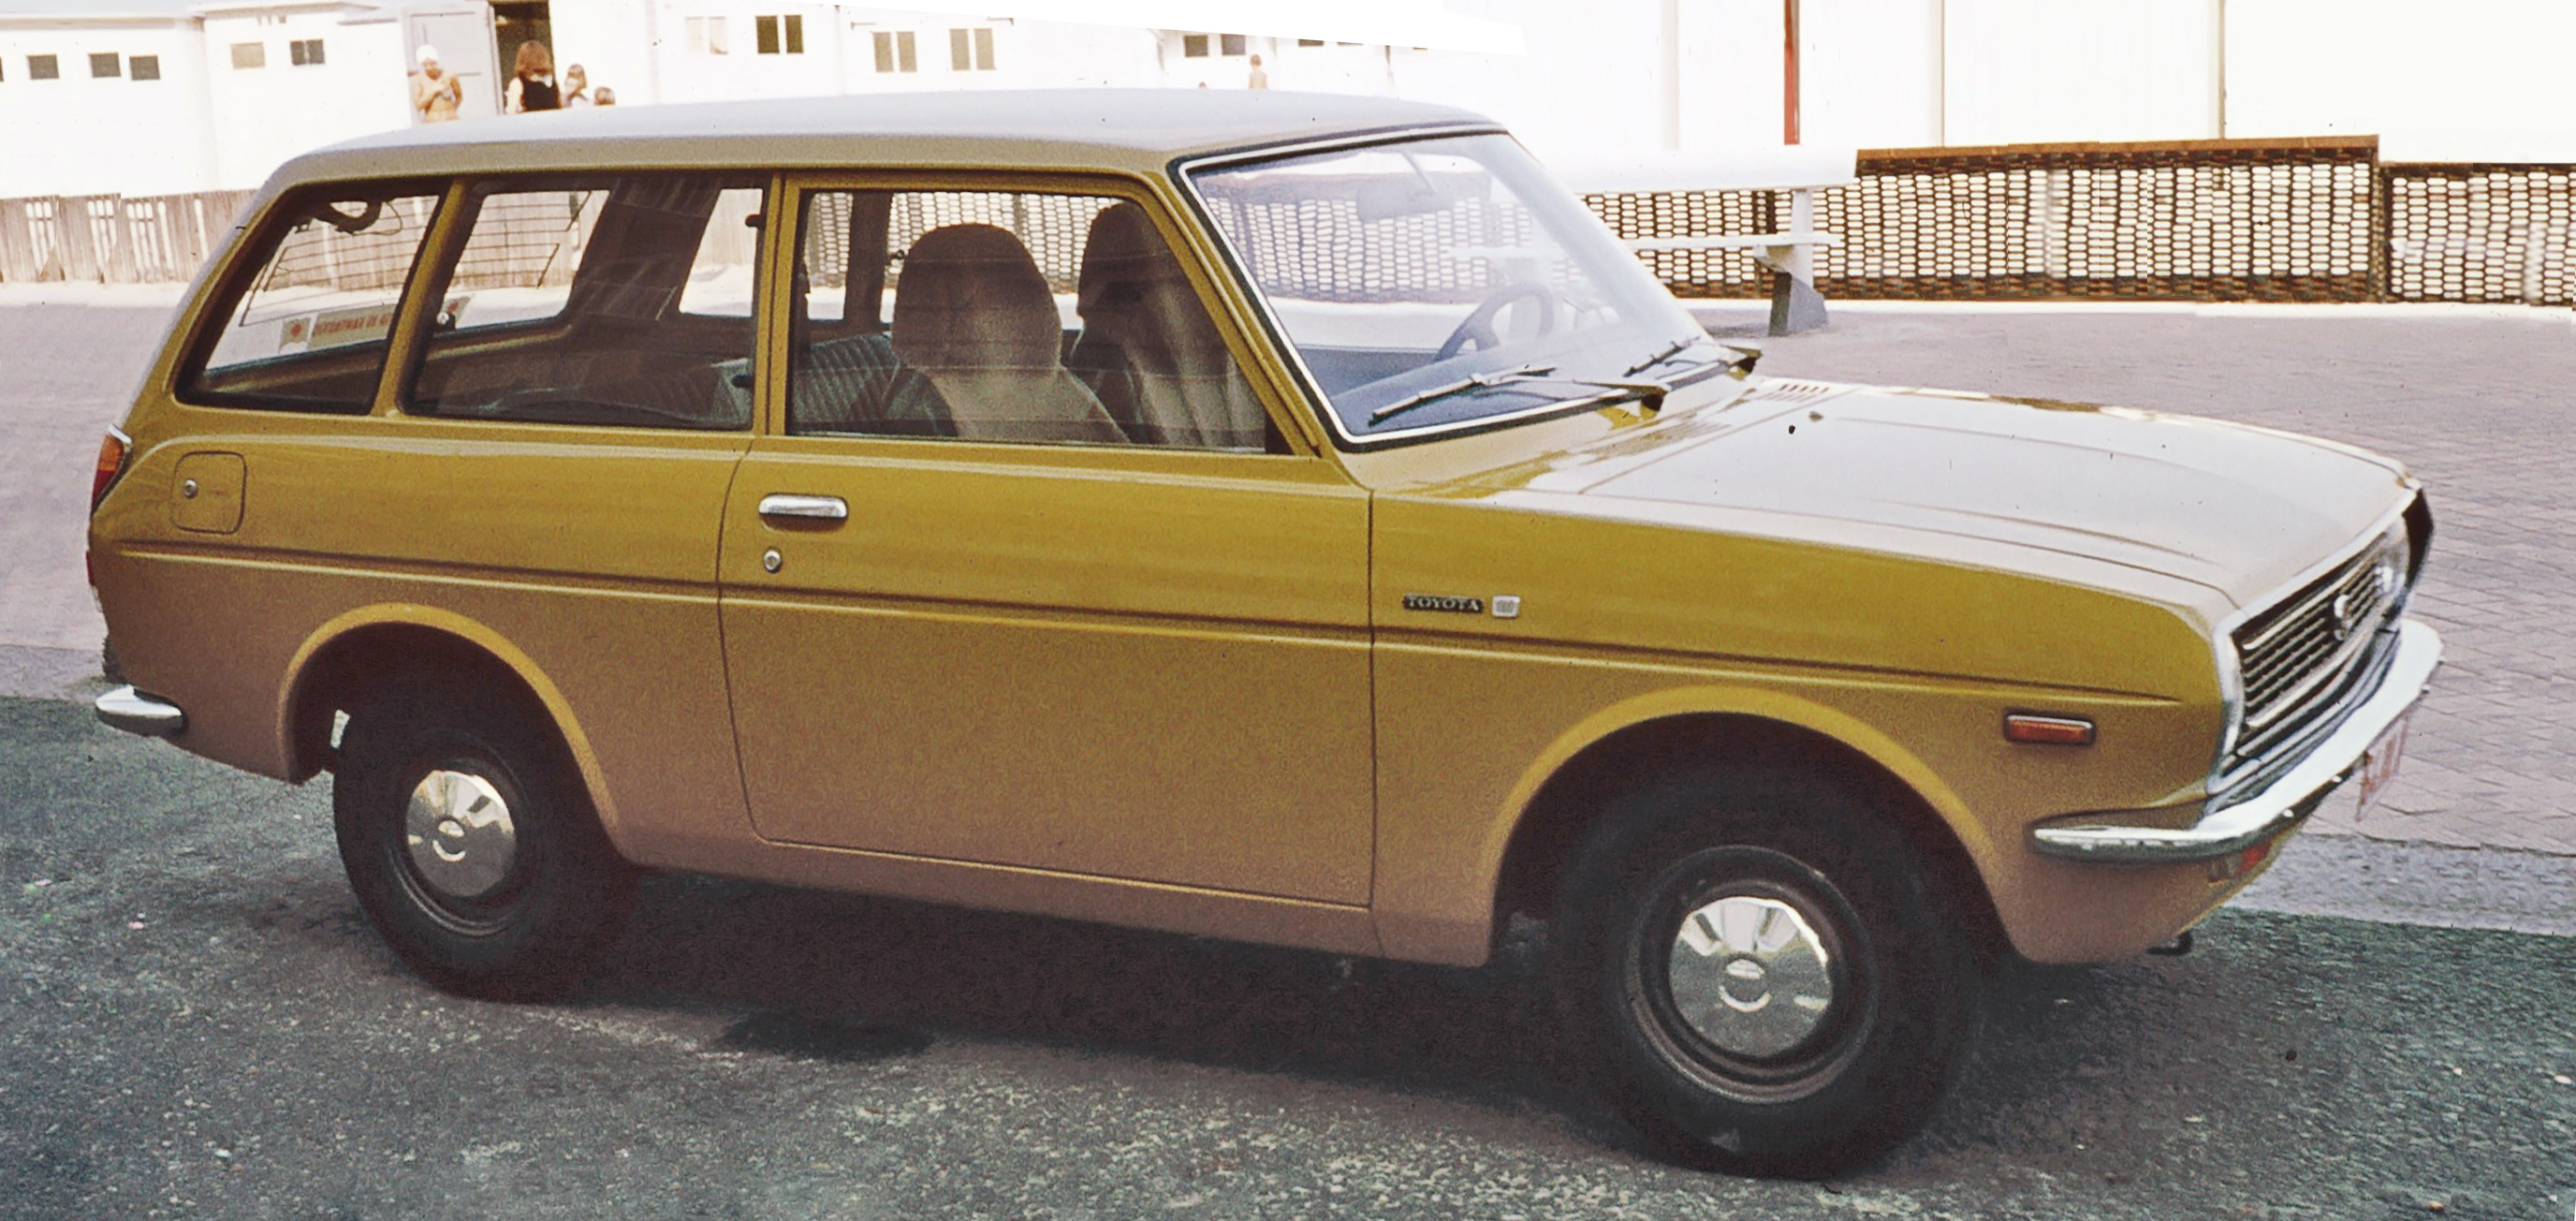 file toyota small wagon tenerife 1979 wikimedia commons. Black Bedroom Furniture Sets. Home Design Ideas